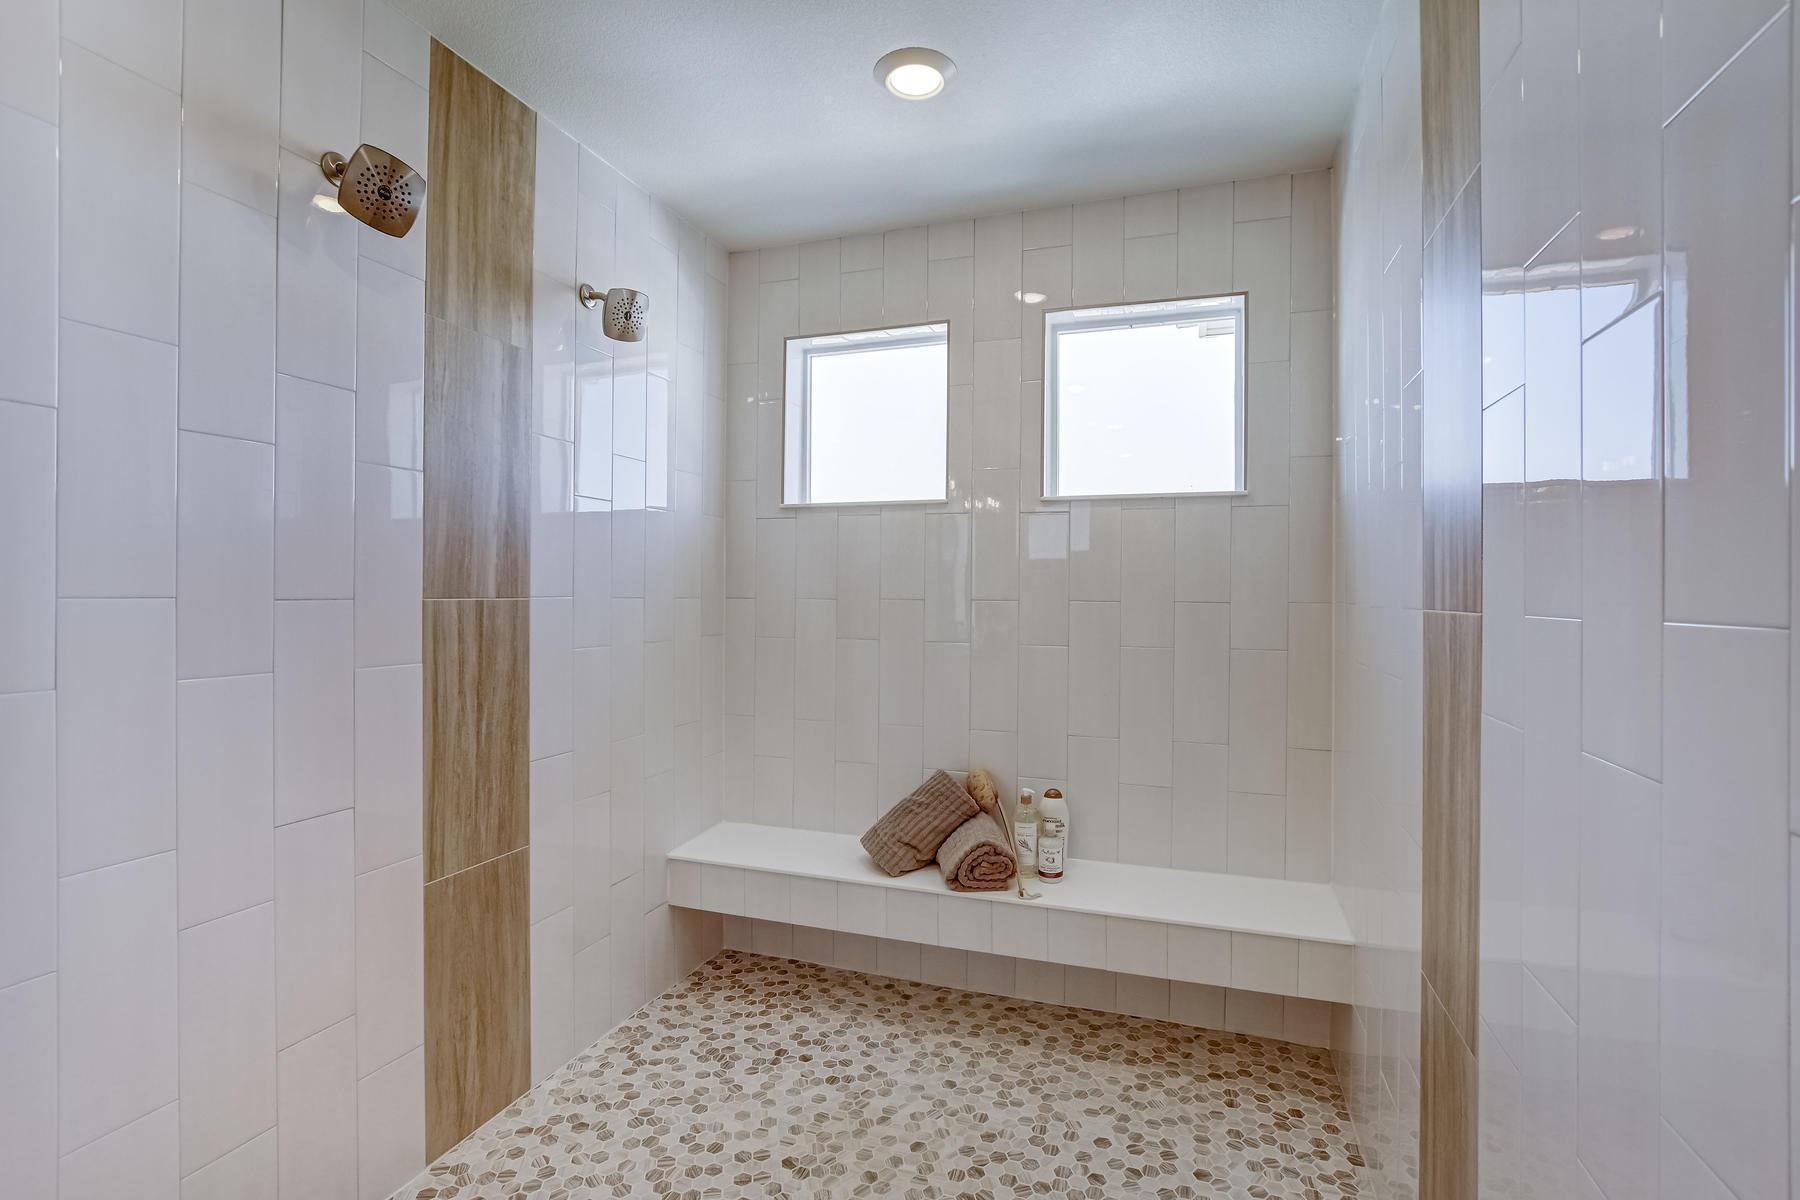 Bathroom featured in the  Branson  By Oakwood Homes Colorado in Denver, CO